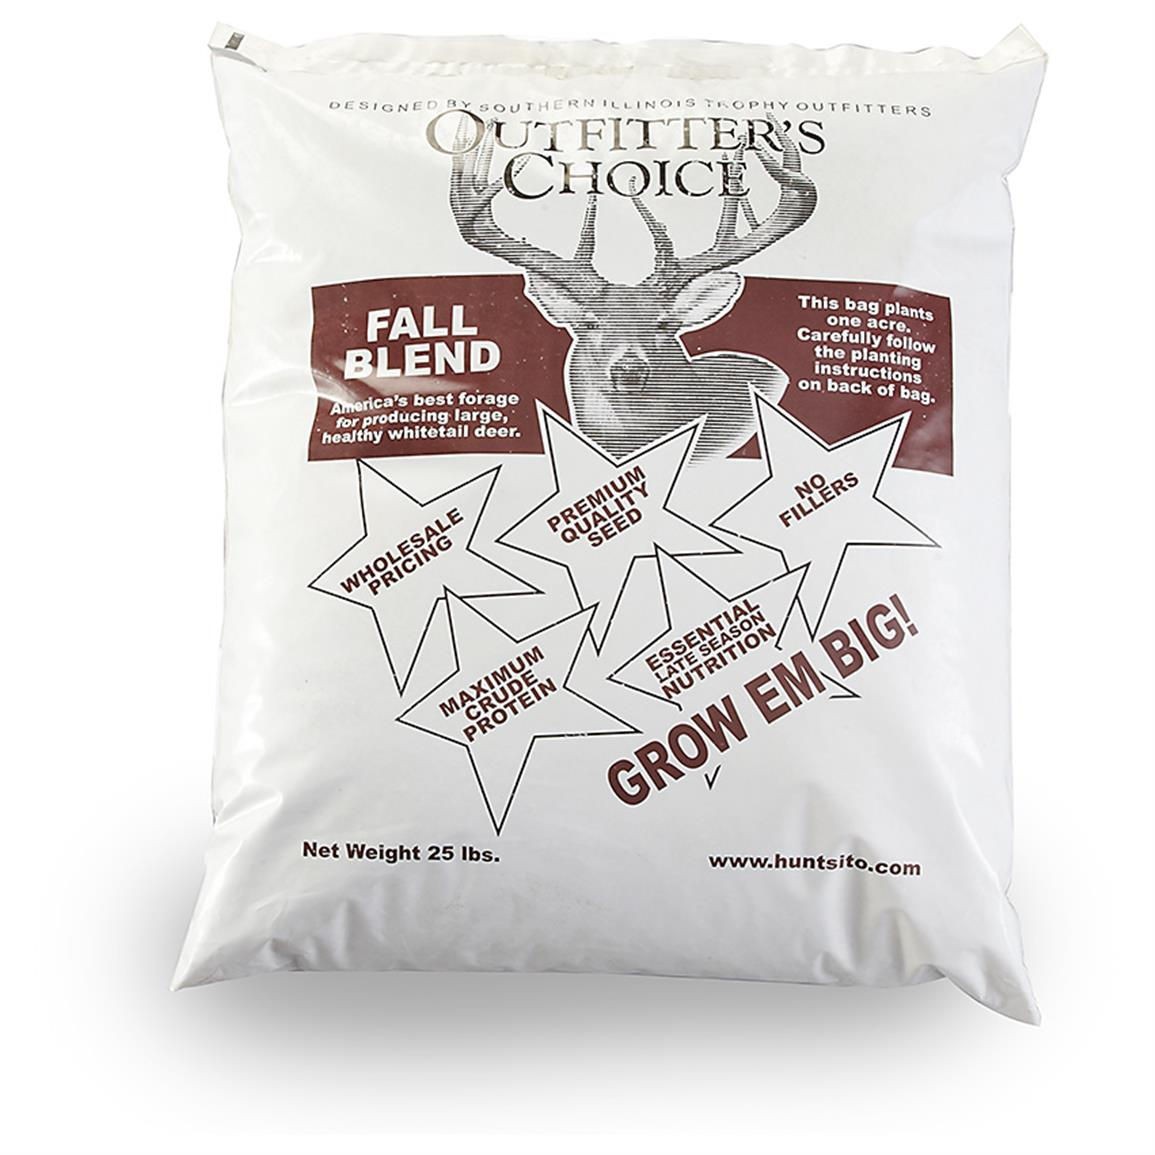 Outfitter's Choice Annual Seed